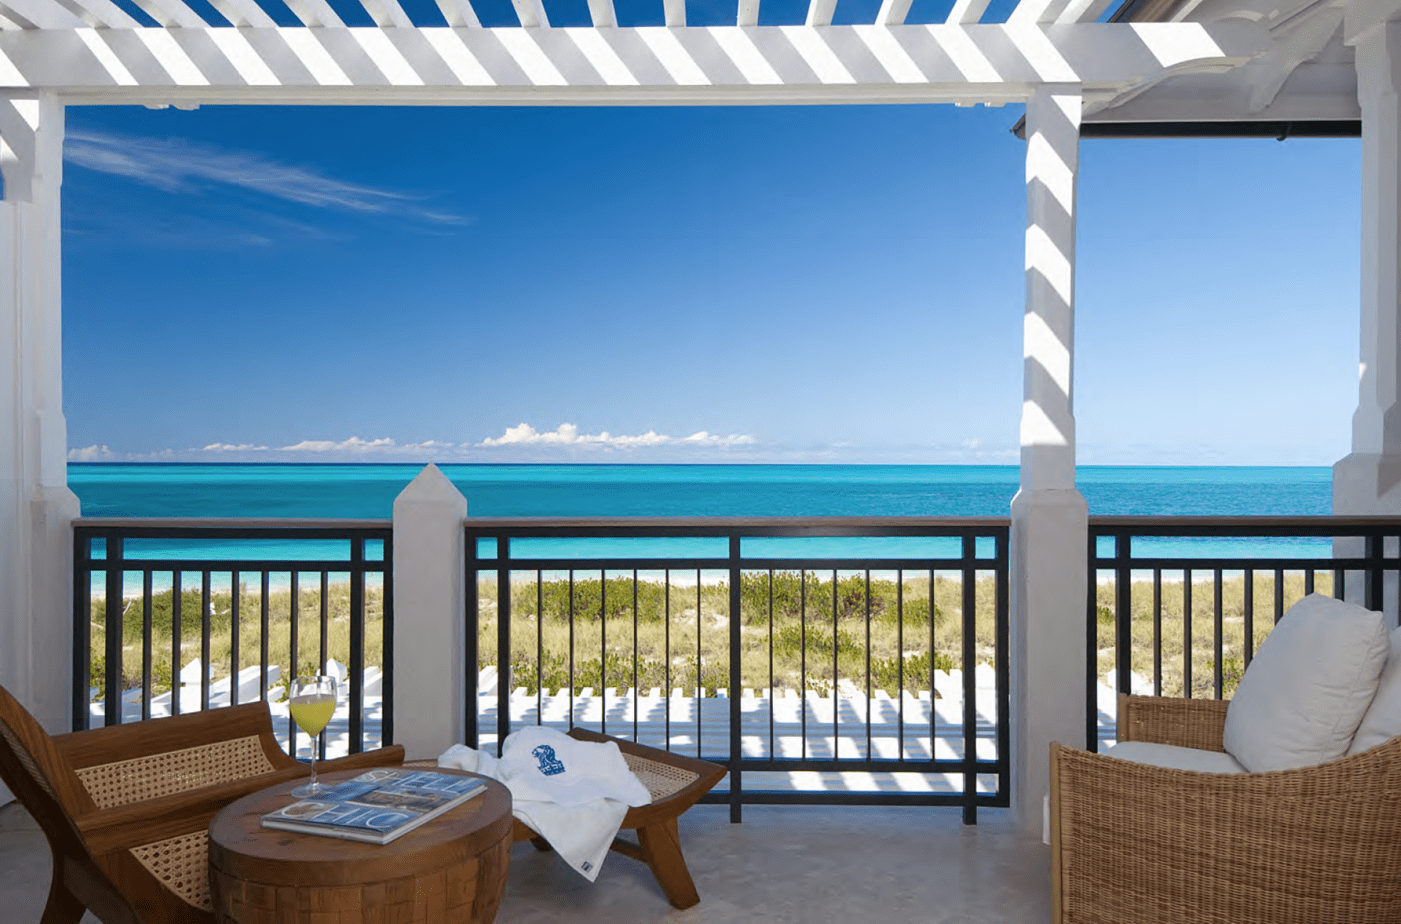 Ritz Carlton Reserve, Molasses Reef, Turks & Caicos